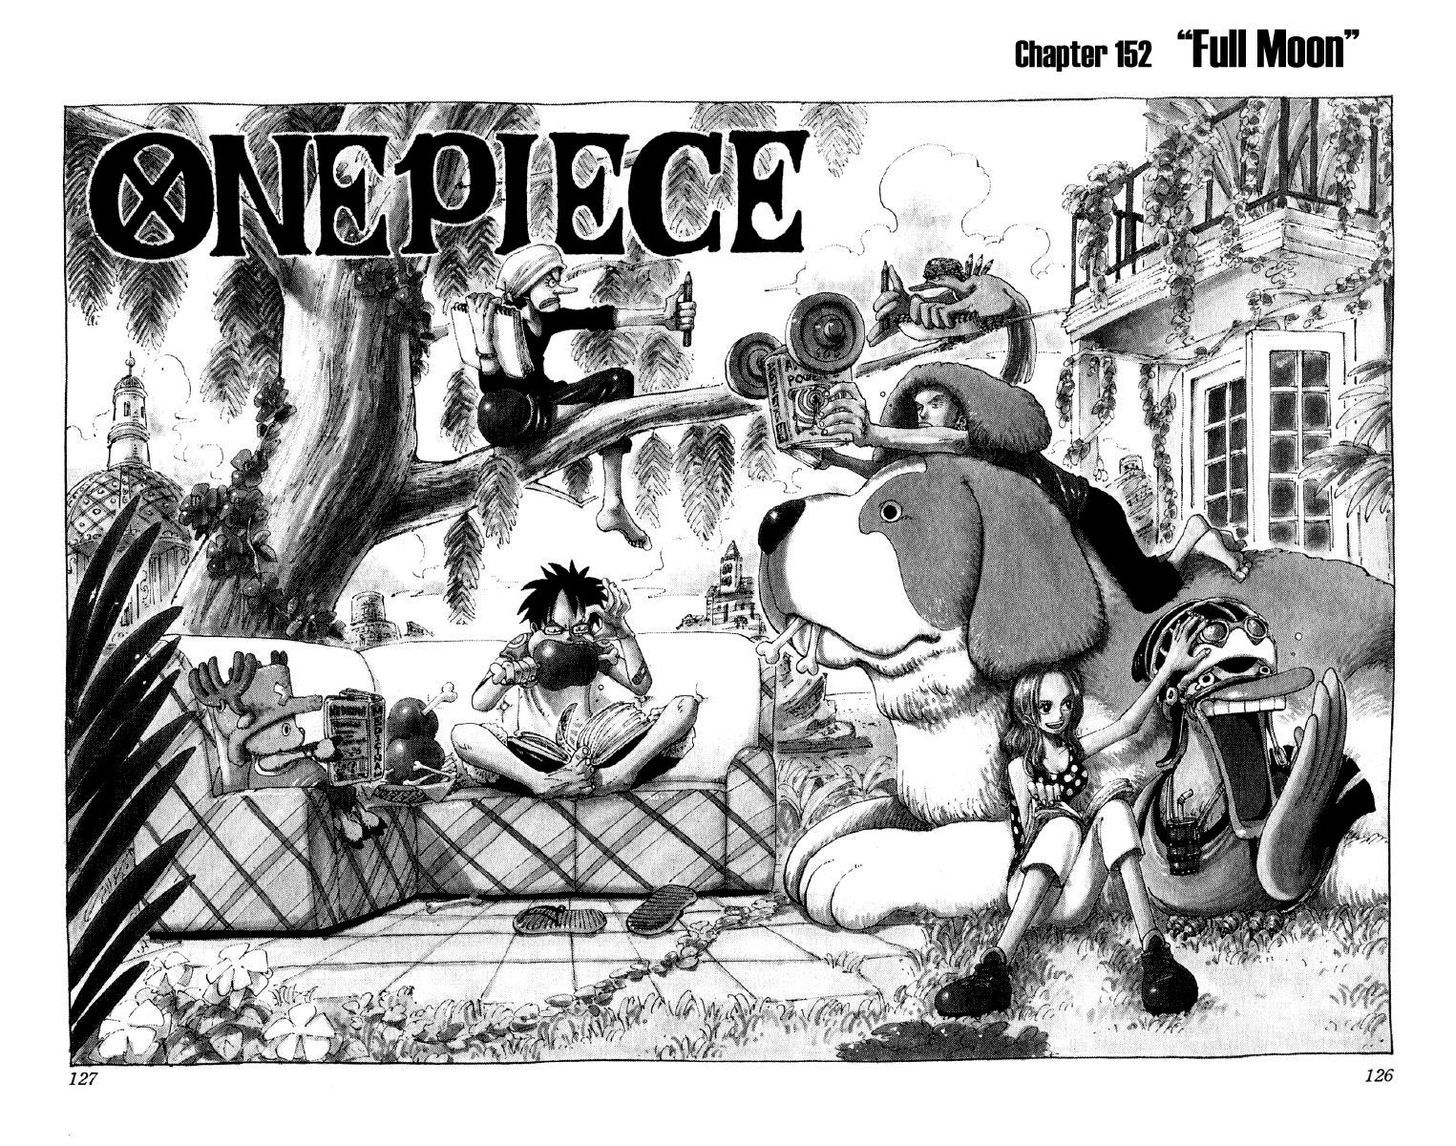 https://im.nineanime.com/comics/pic9/32/96/2500/OnePiece1520358.jpg Page 1